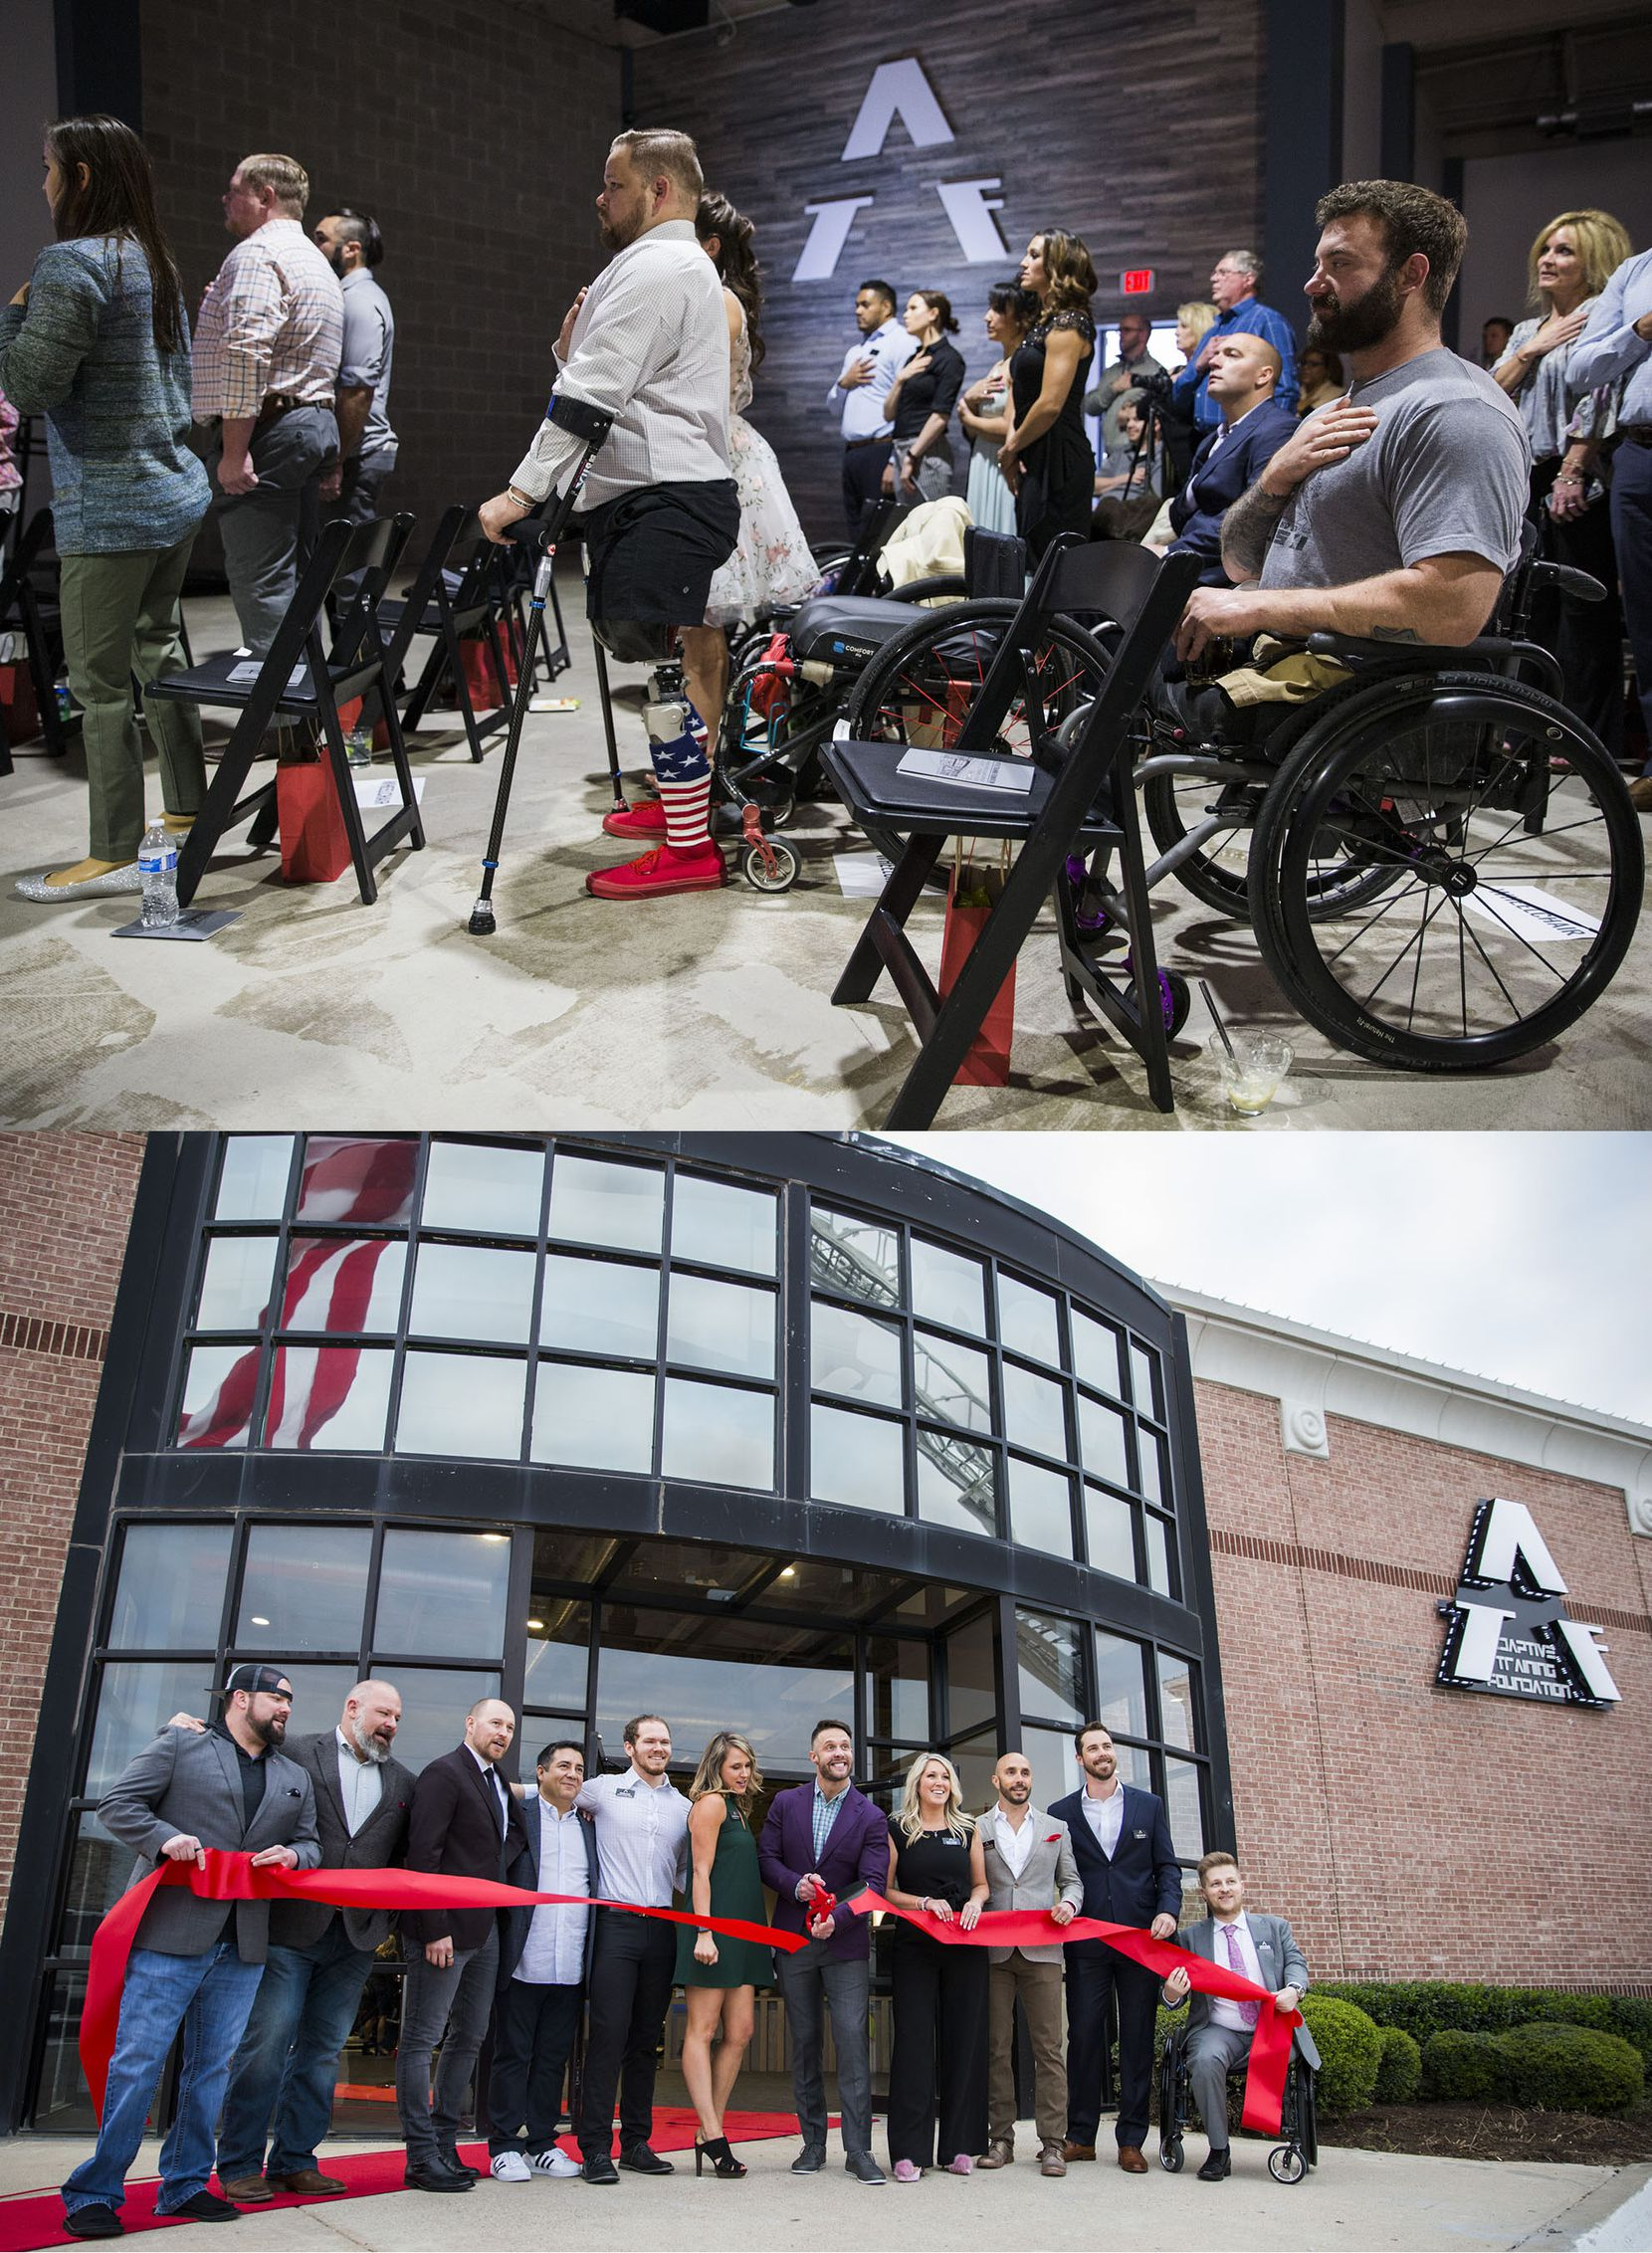 (Above) Athletes place their hands over their hearts as the national anthem played during the opening of the Adaptive Training Foundation on April 7, 2018 in Carrollton. (Below) Founder and owner David Vobora, center, cuts the ribbon, flanked by his wife, Sarah, (center right), and executive director Kat Watson Rehwinkel (center left), who supplied the clean diaper for his face after he was bitten by a dog.